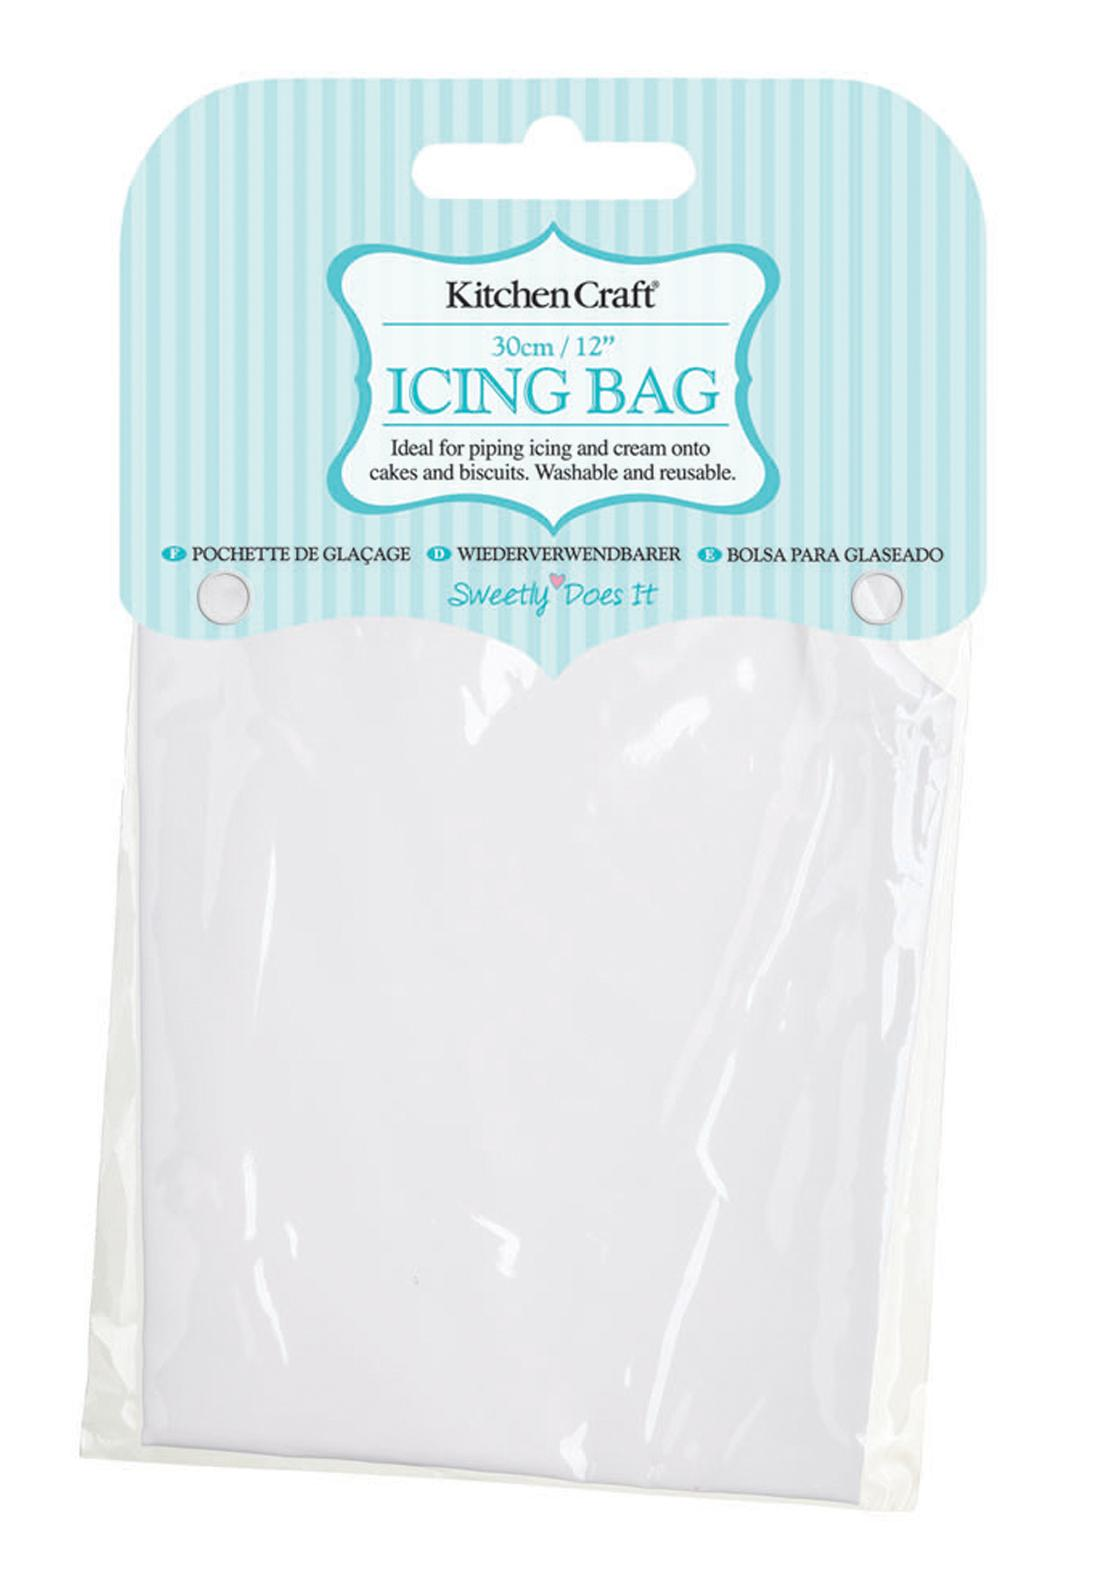 Sweetly Does It Icing Bag 12""